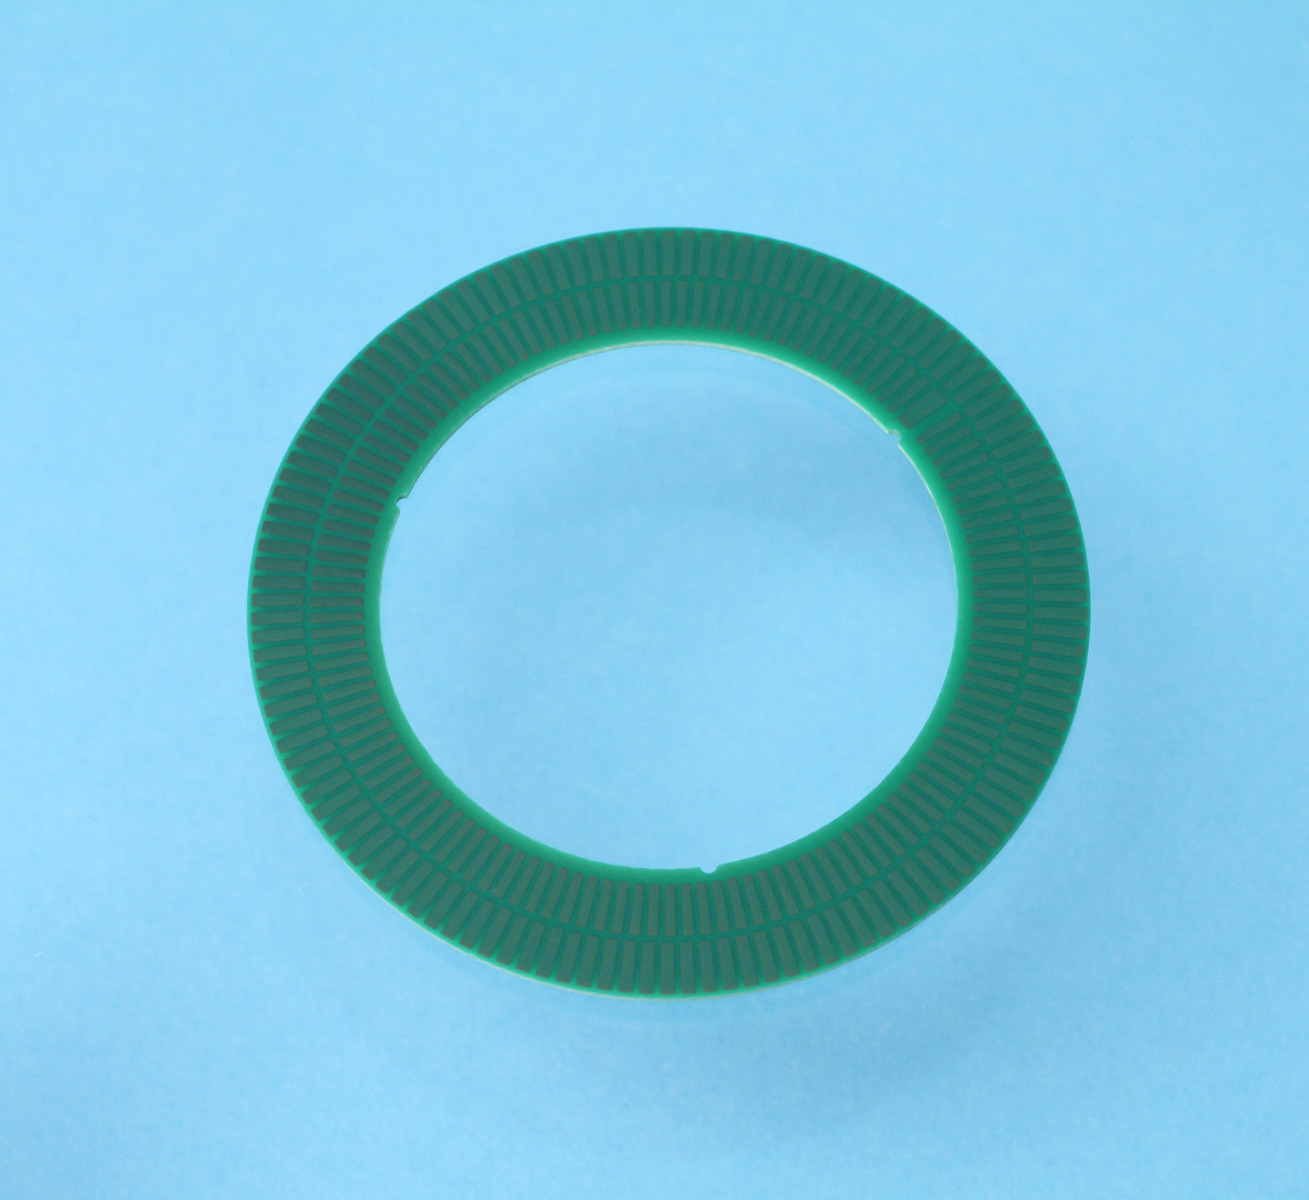 TPCD06 Codewheel with 128 periods, inner diameter 36 mm and outer diameter 52.7 mm for Incremental Encoders IT3402C, IT3403C and IT5602C